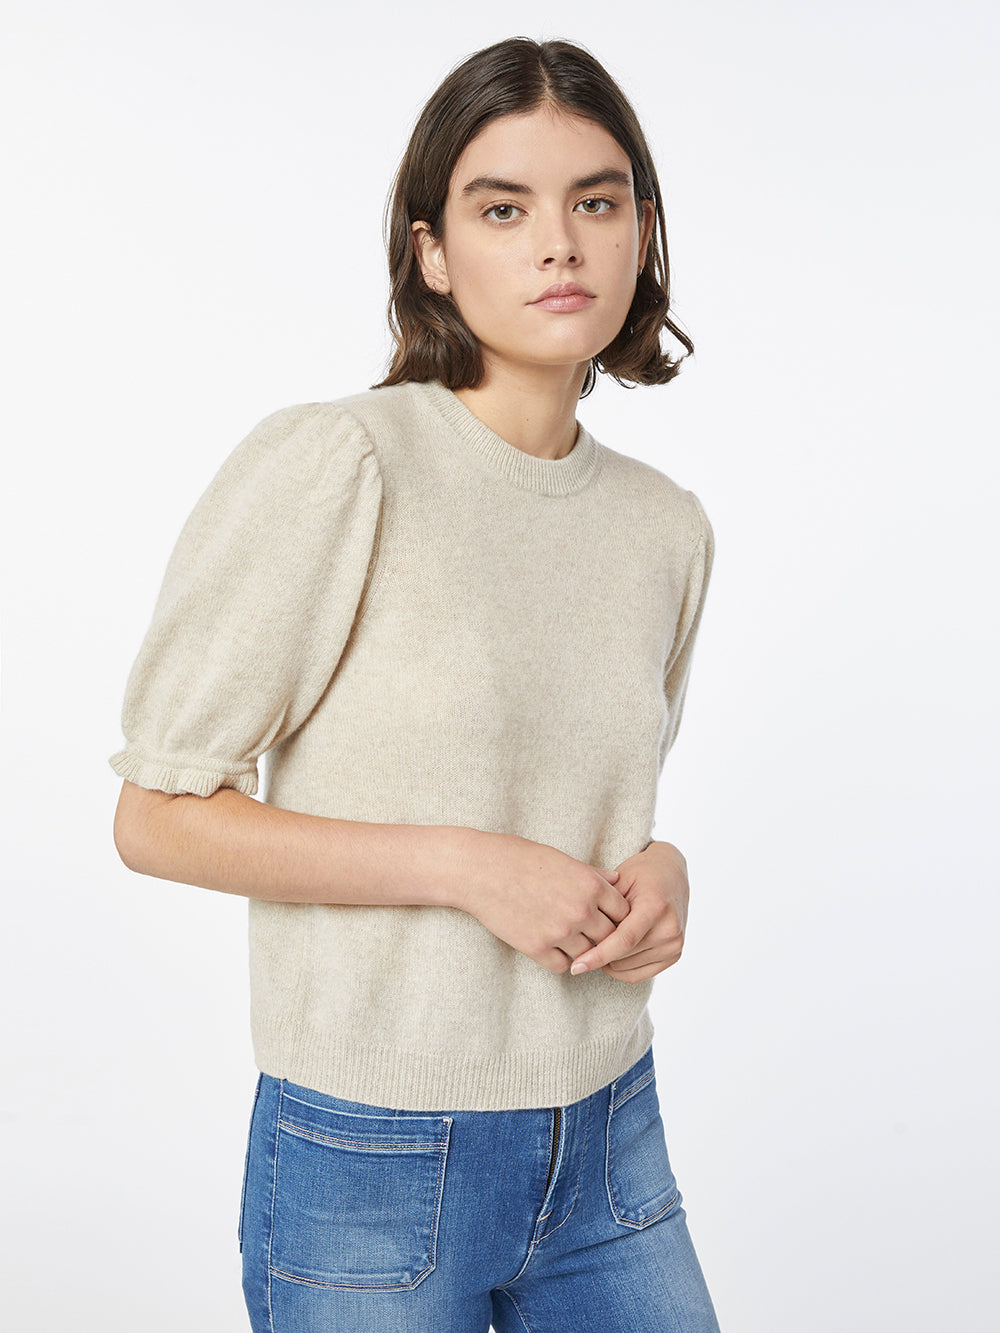 sweater front view 3